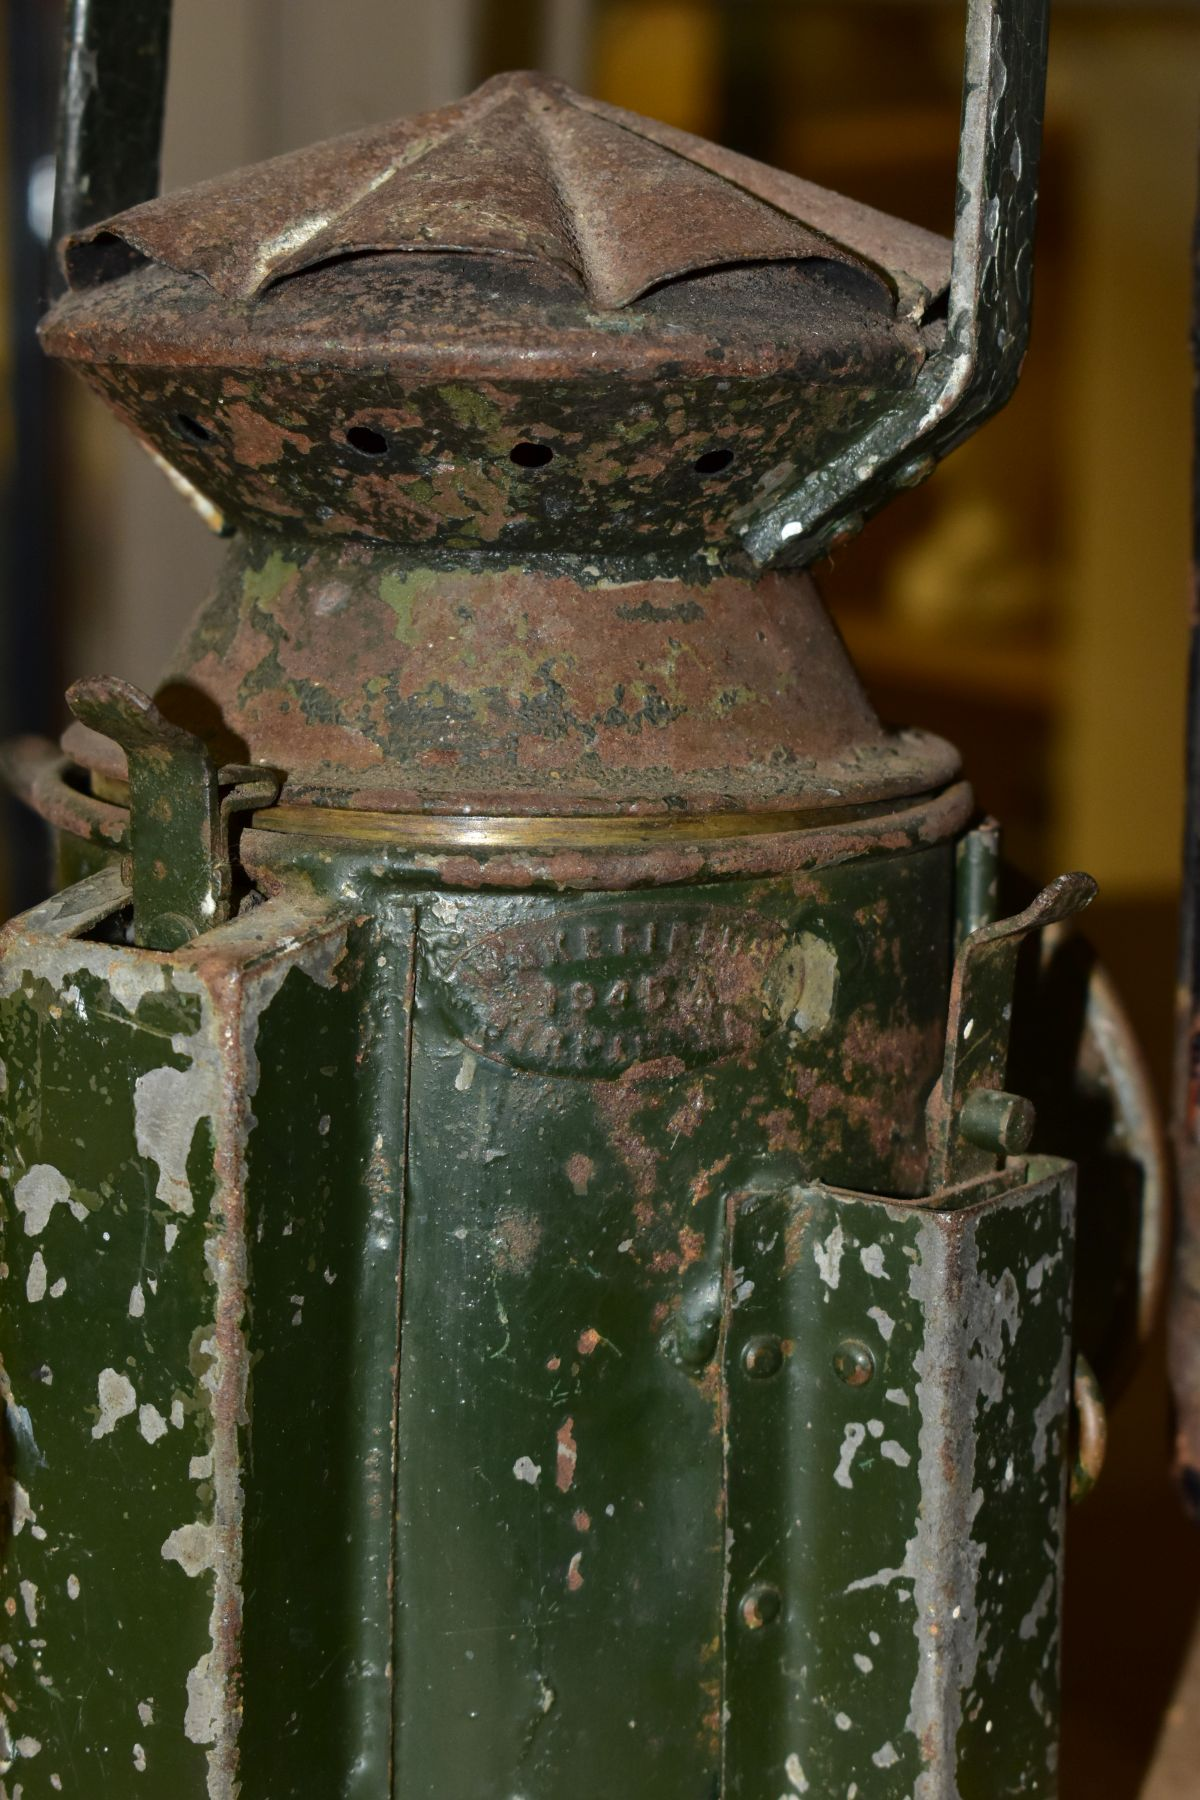 AN ADLAKE NO. 55 RAILWAY LAMP, black painted body with clear bulls eye lens, complete with lift - Image 6 of 8